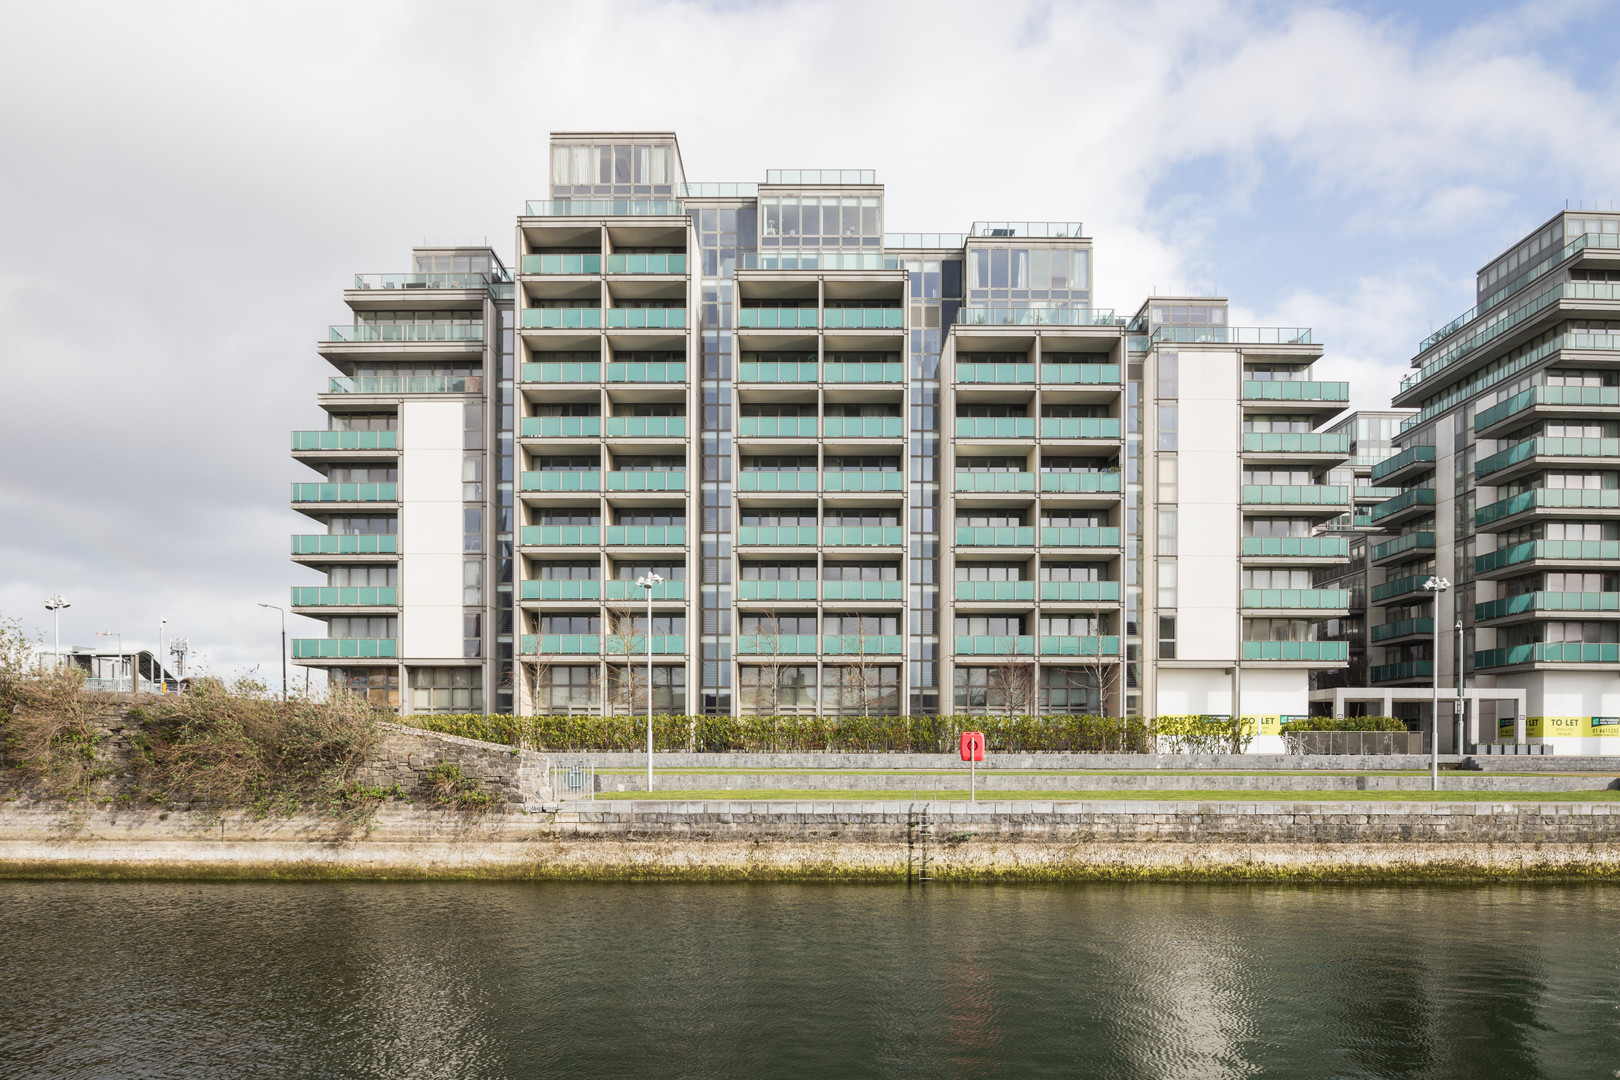 External view of the Spencer Dock Apartments in Dublin from Linear Park